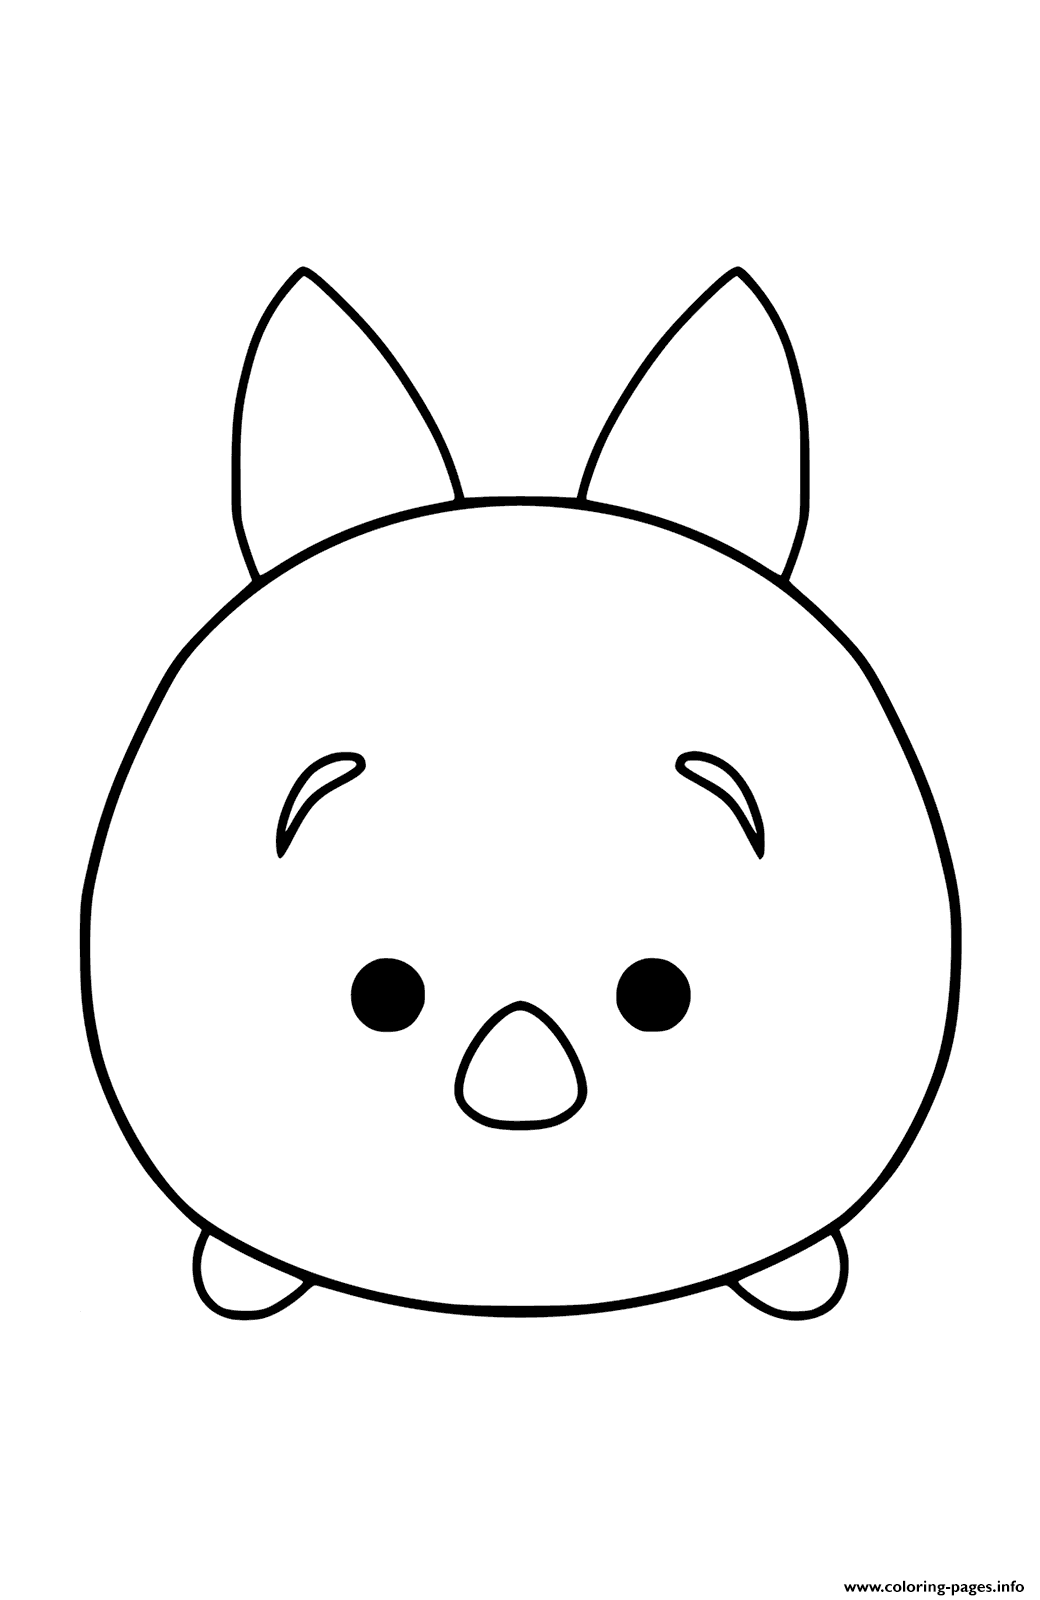 disney tsum tsum plush piglet to color coloring pages